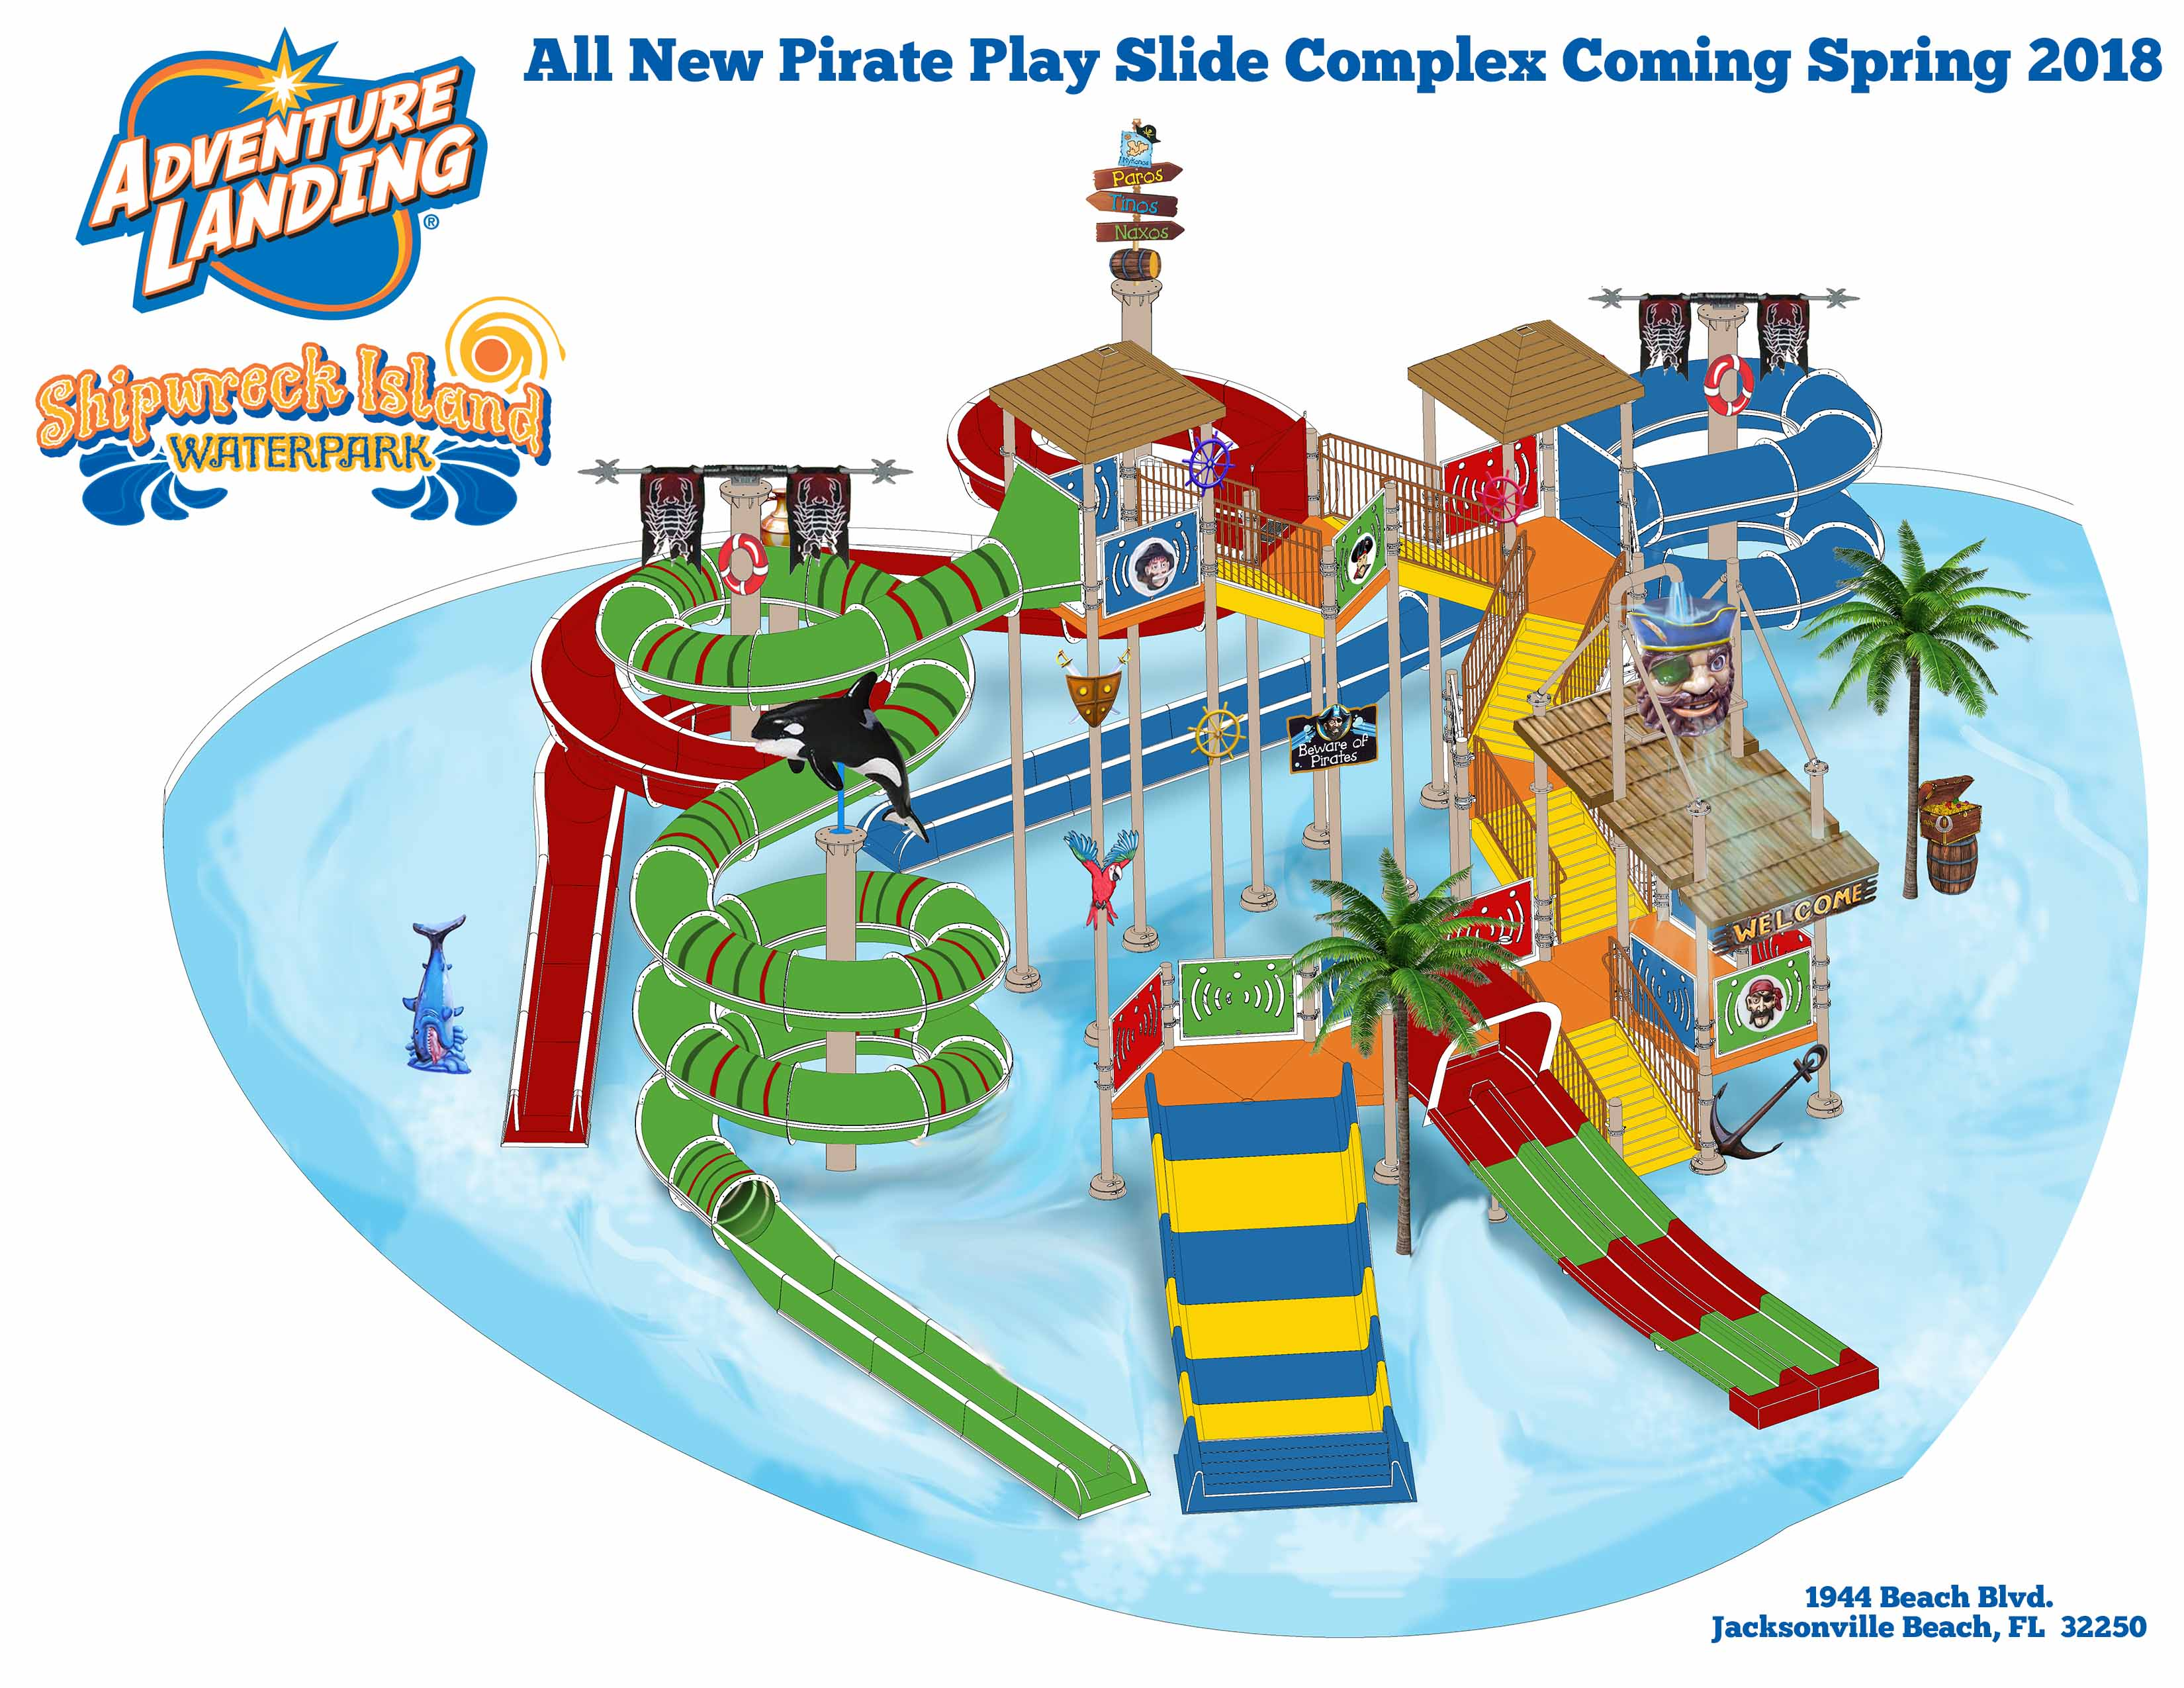 Build Out Of New 1 Million Interactive Pirate Play Slide